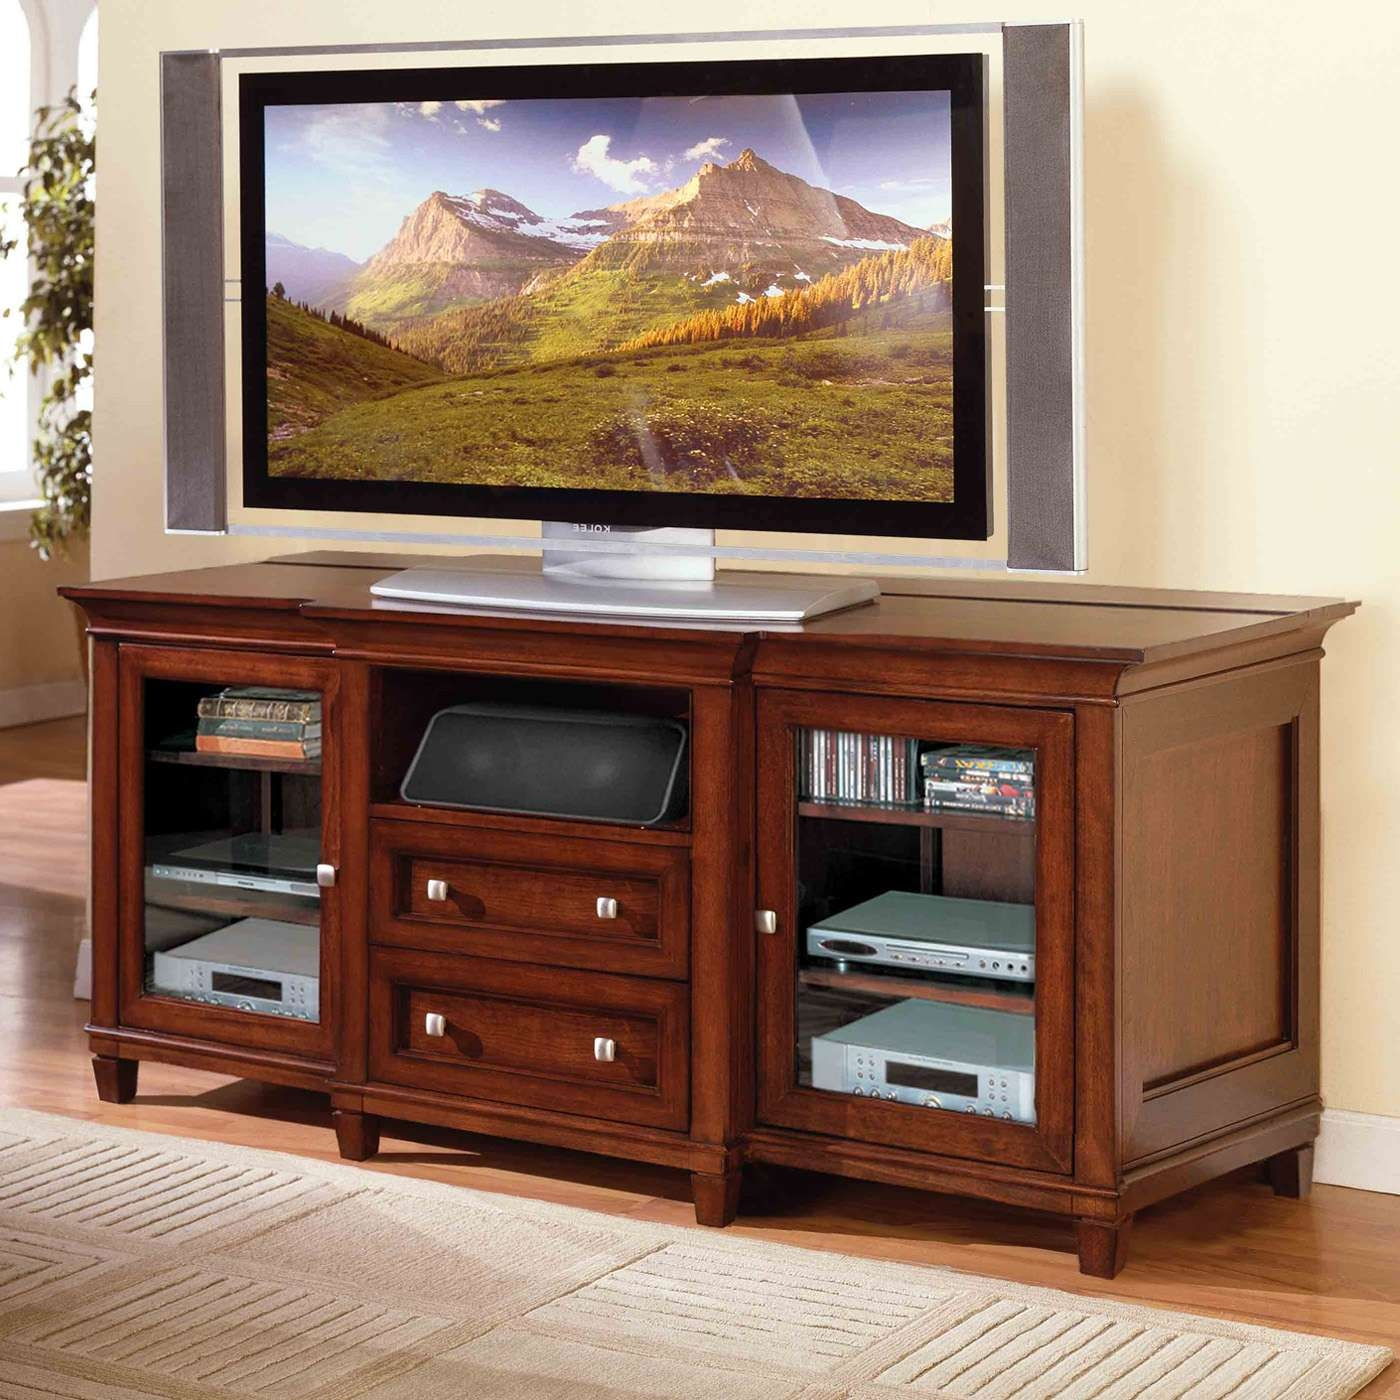 Brown Mahogany Wood Flat Screen Tv Stand With Storage Drawers Of Regarding Mahogany Tv Stands Furniture (View 13 of 15)